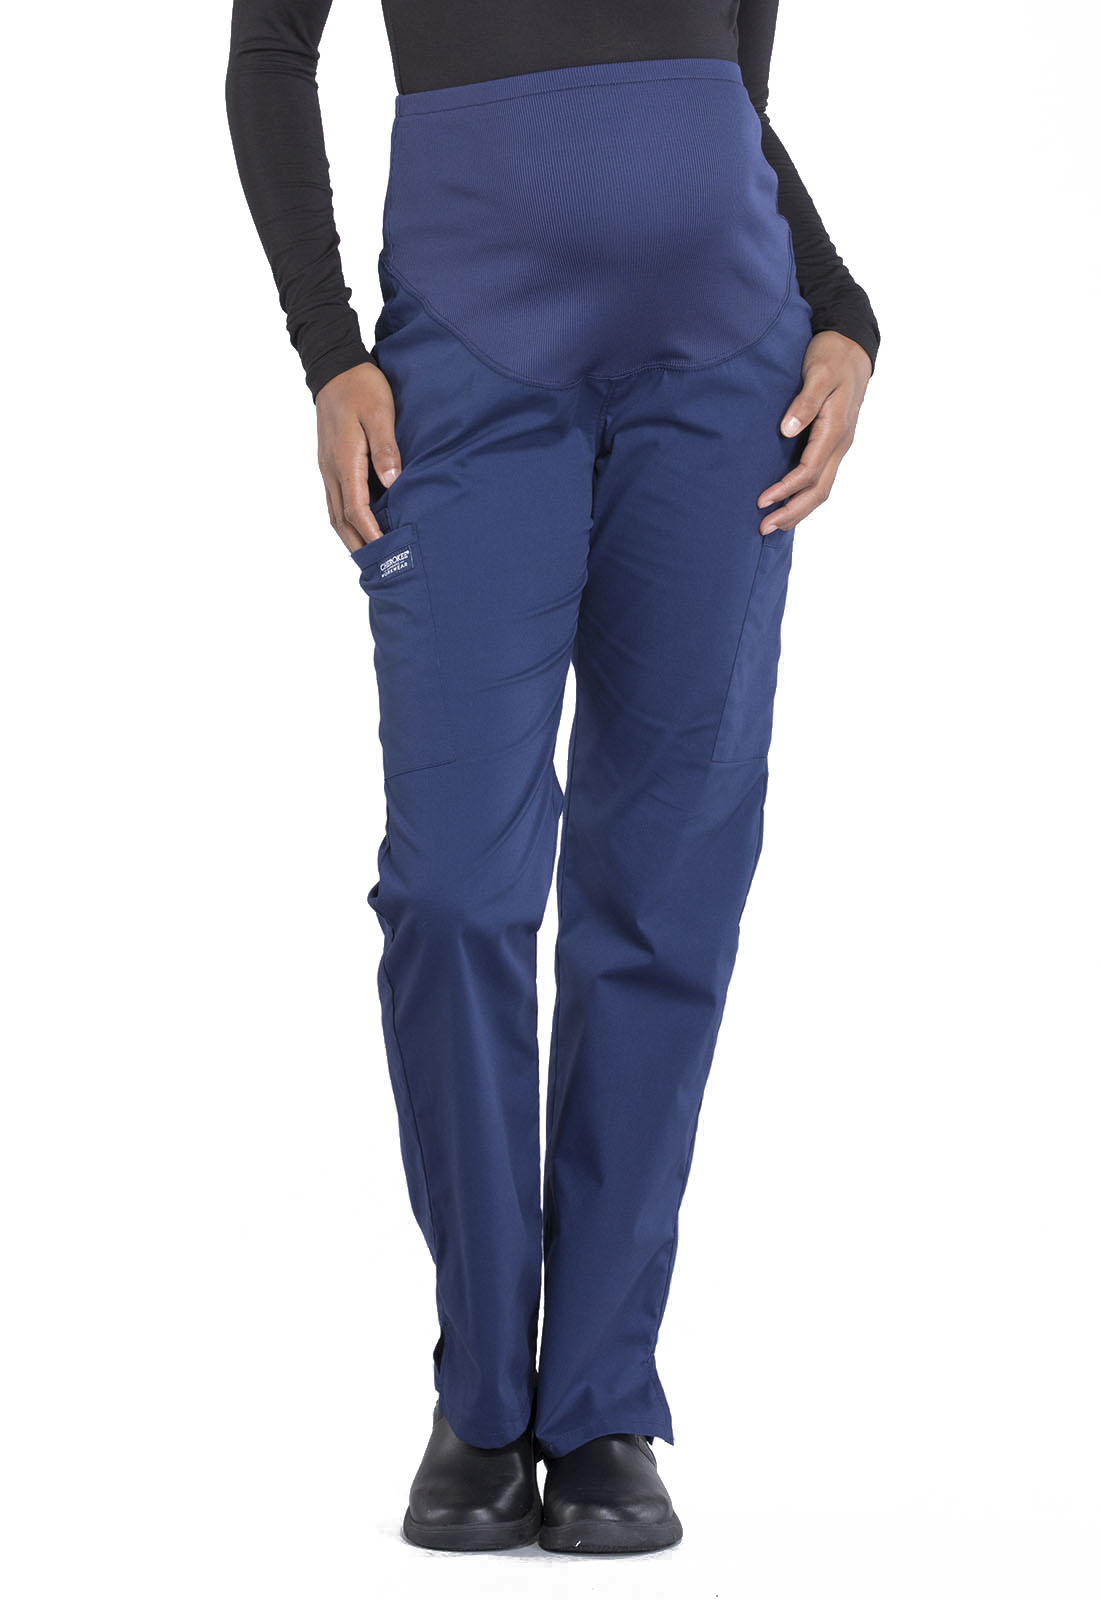 9fec58ea6b9 WW Professionals Maternity Straight Leg Pant in Navy WW220-NAV from Work  Wear House